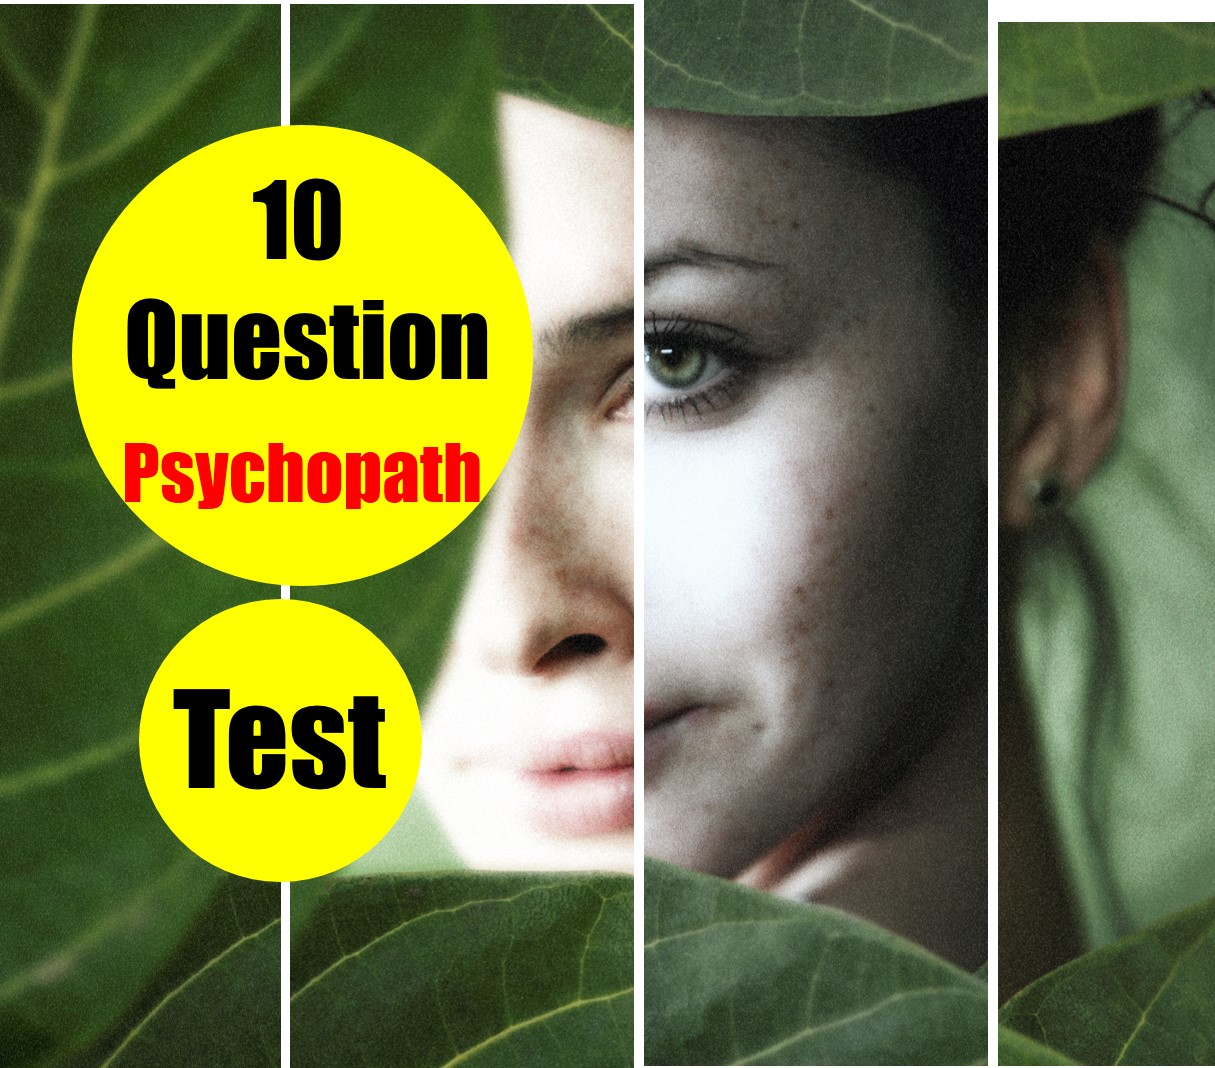 Sociopath test for someone else